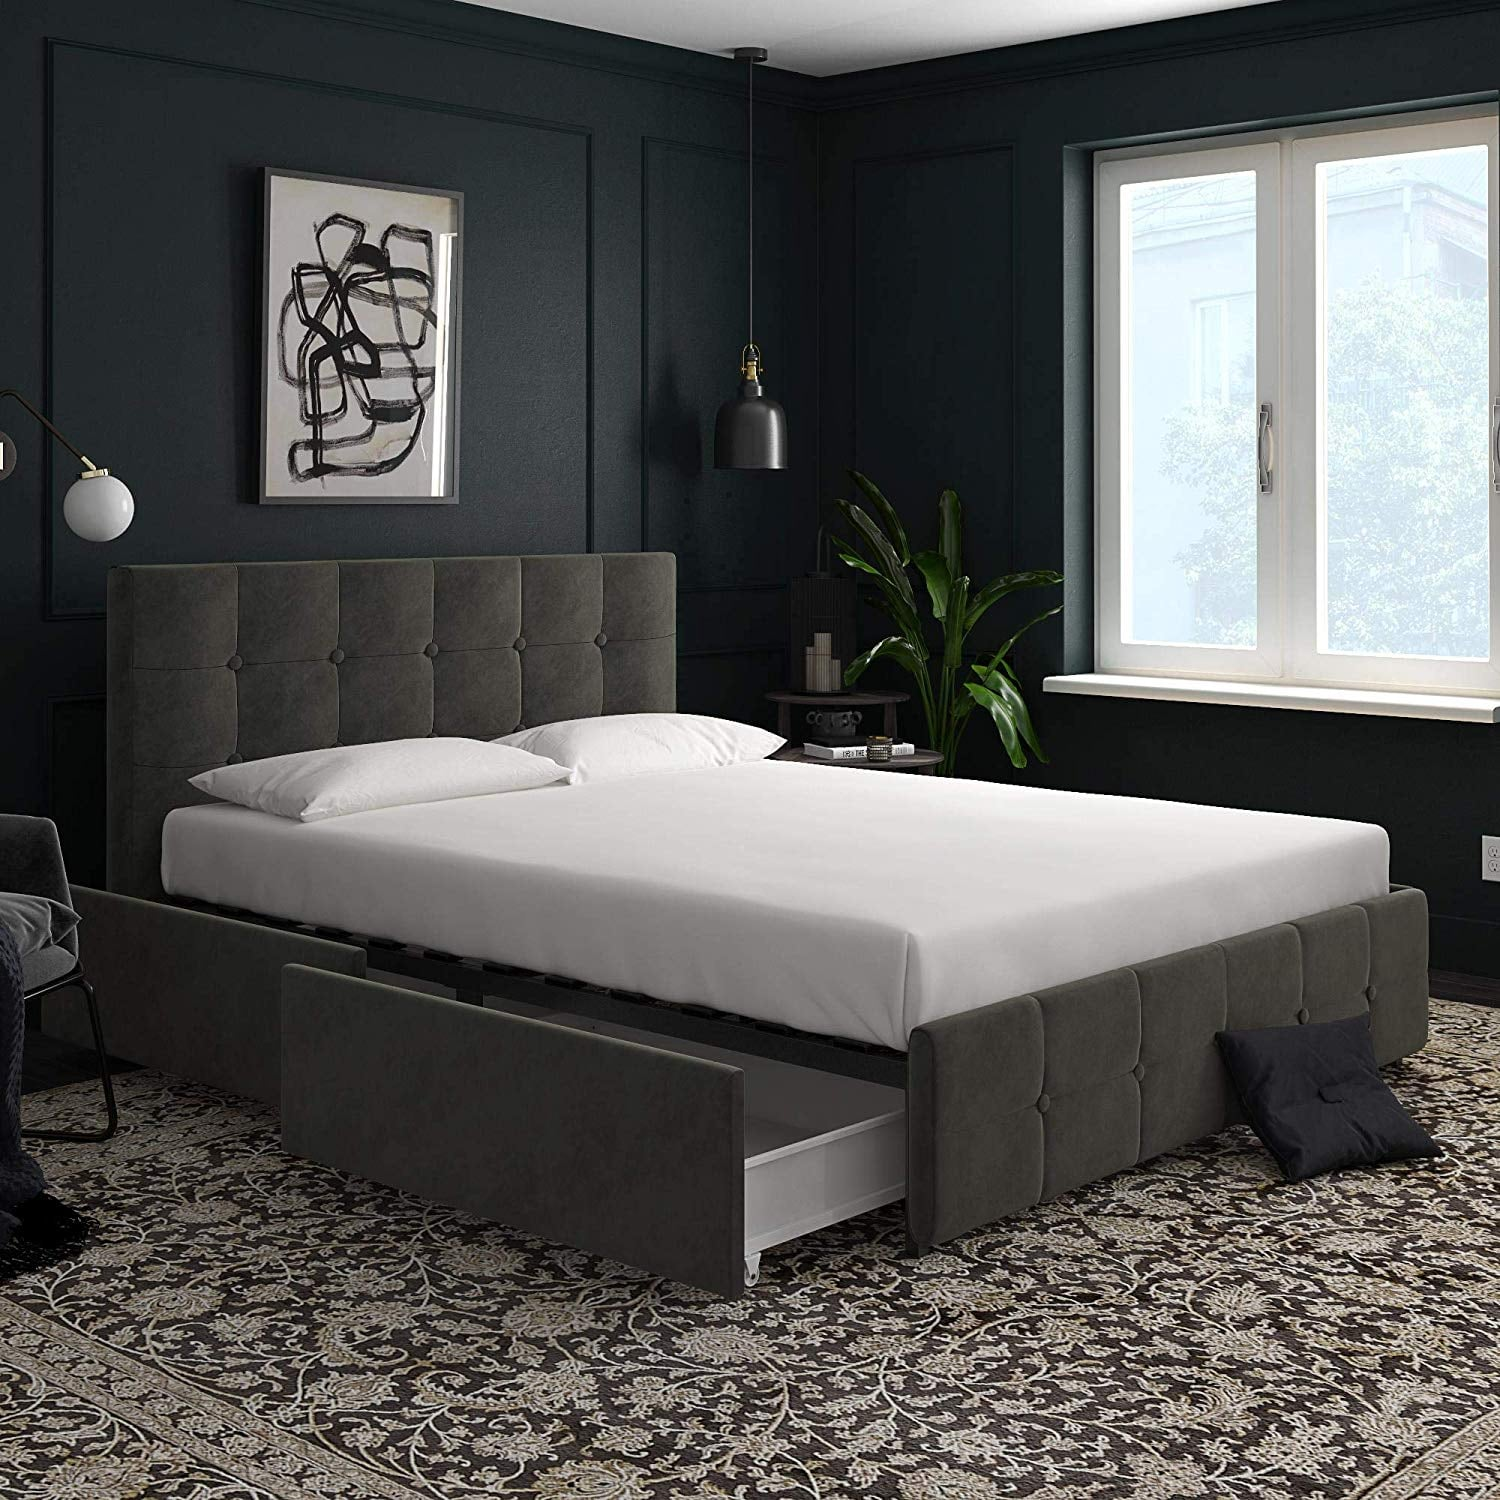 Grey Velvet Queen Upholstered Bed 14 Bed Frames Amazon Customers Can T Stop Buying Starting At Less Than 90 Popsugar Home Photo 8